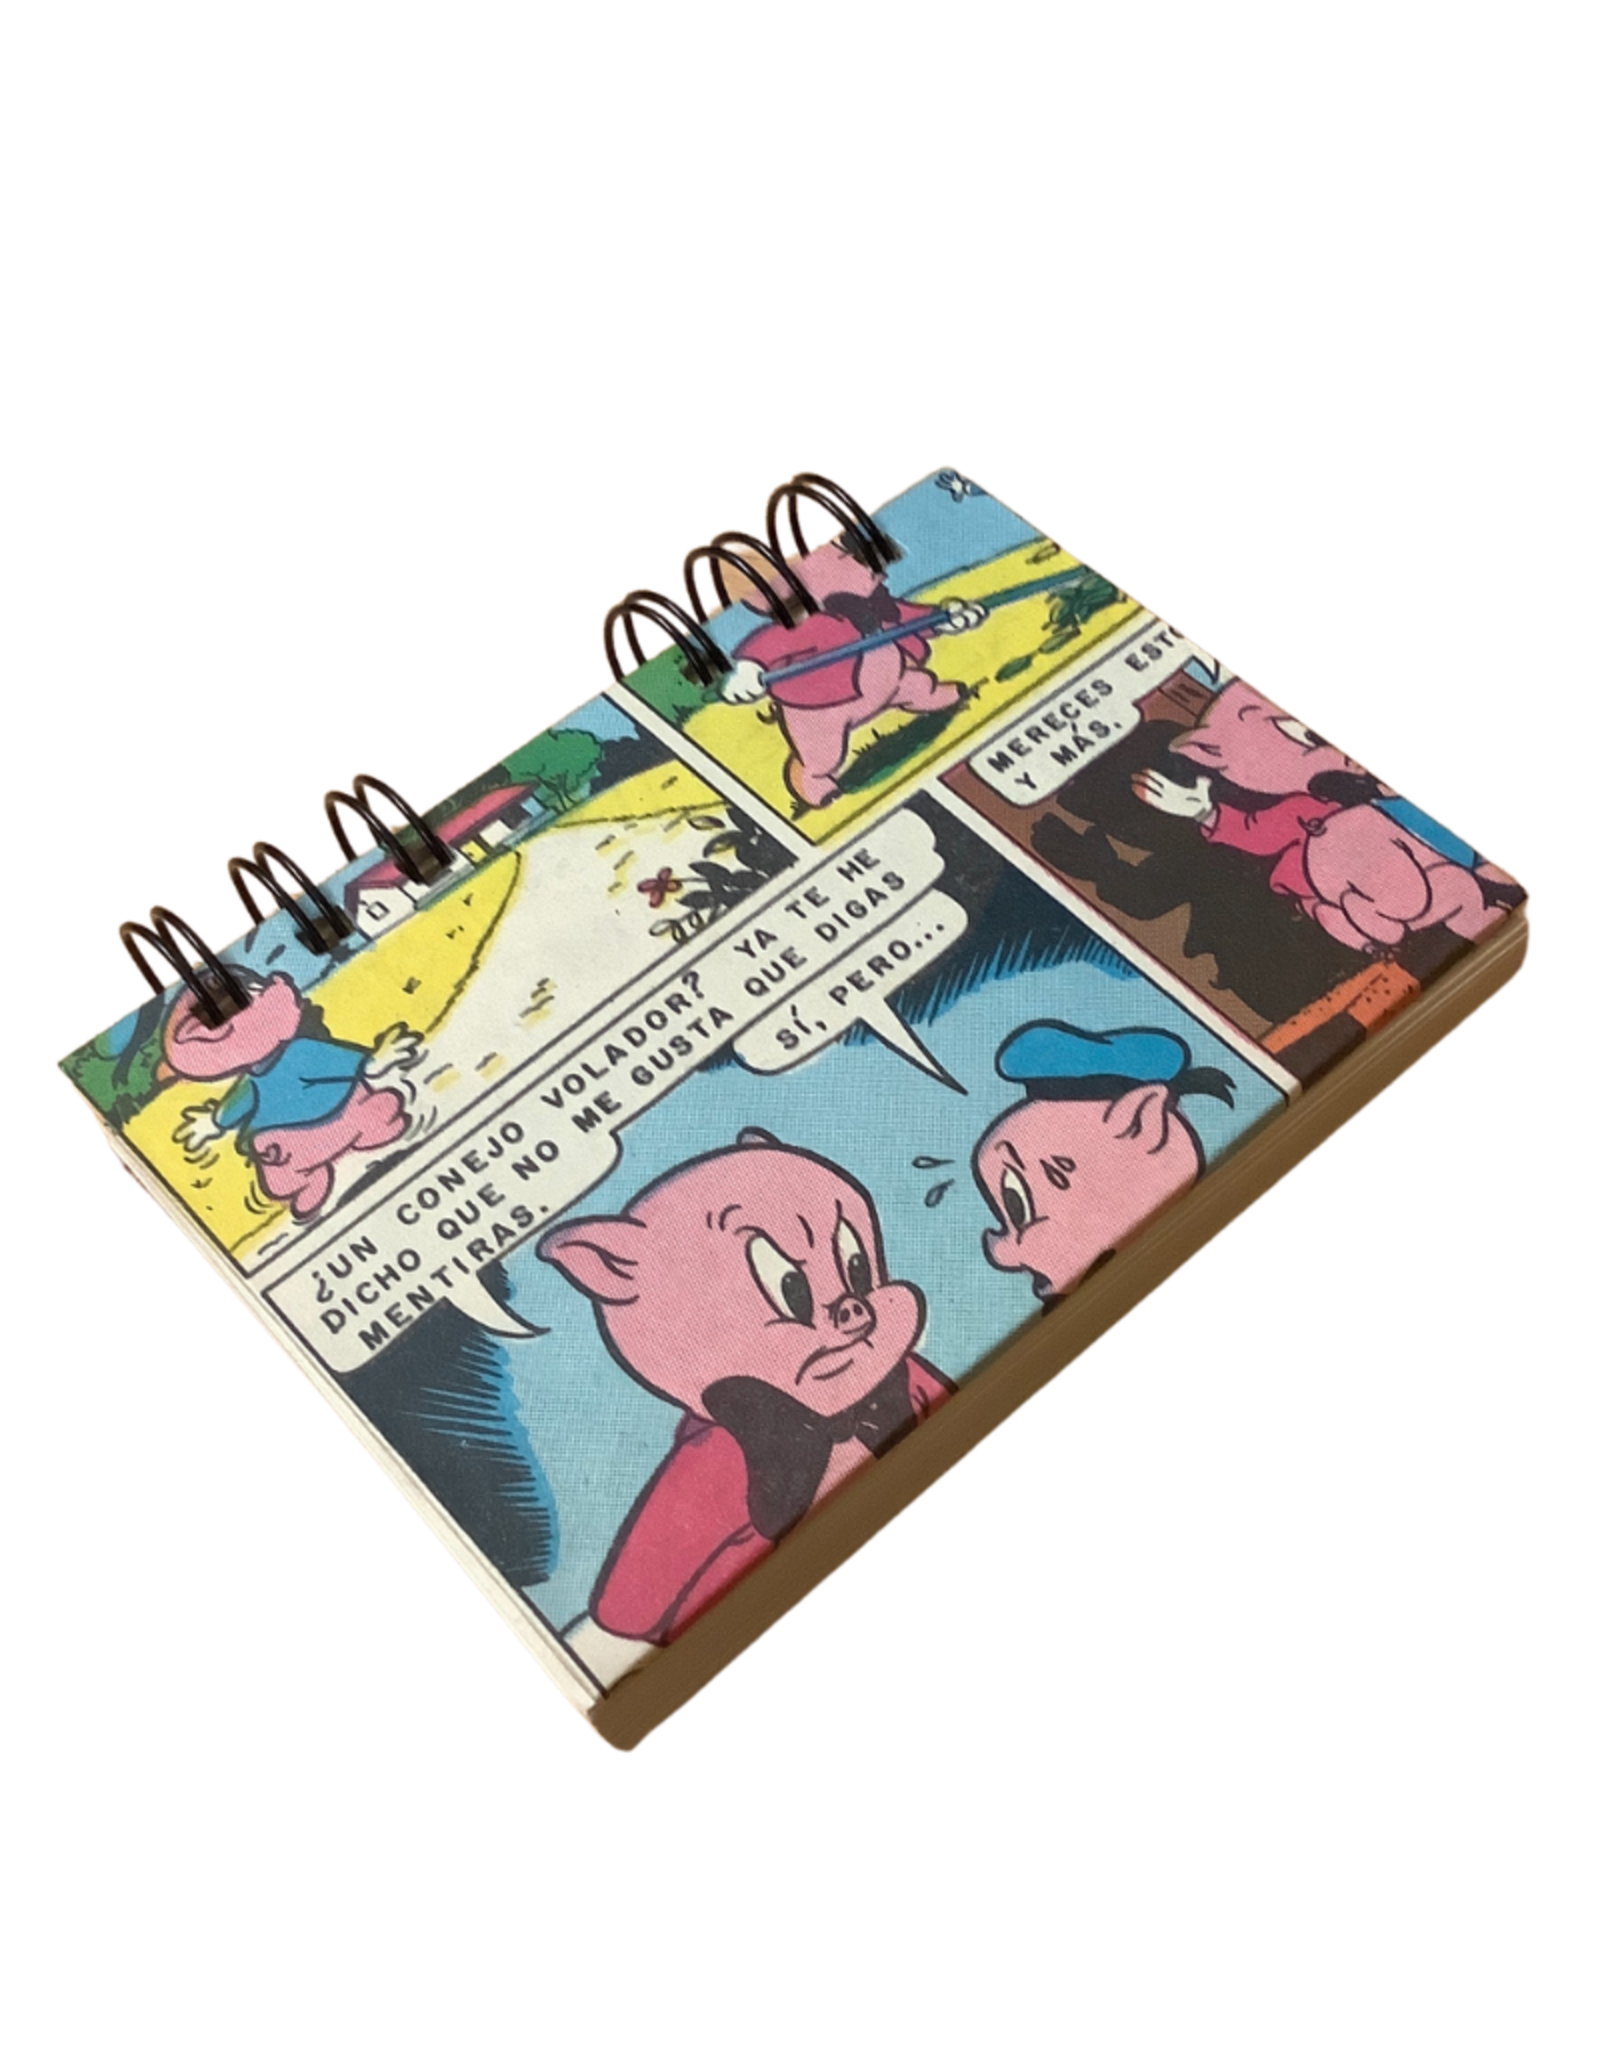 Porky Pig Recycled Comic Notebook